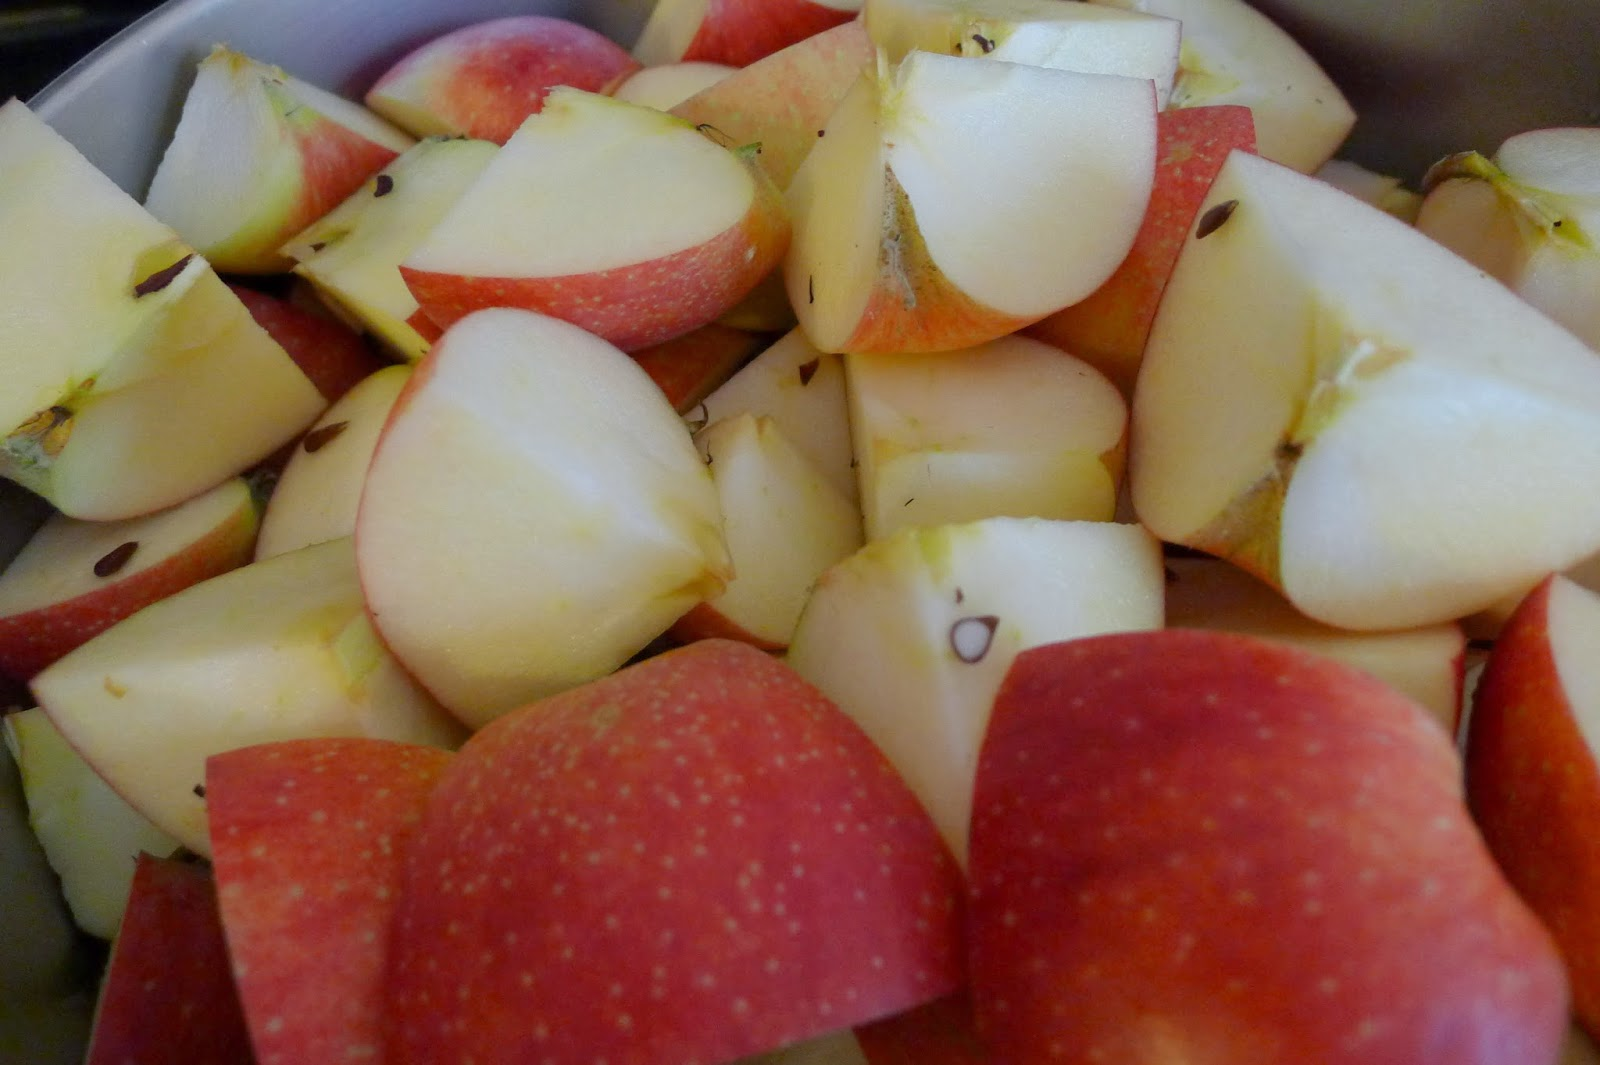 Apples for apple sauce